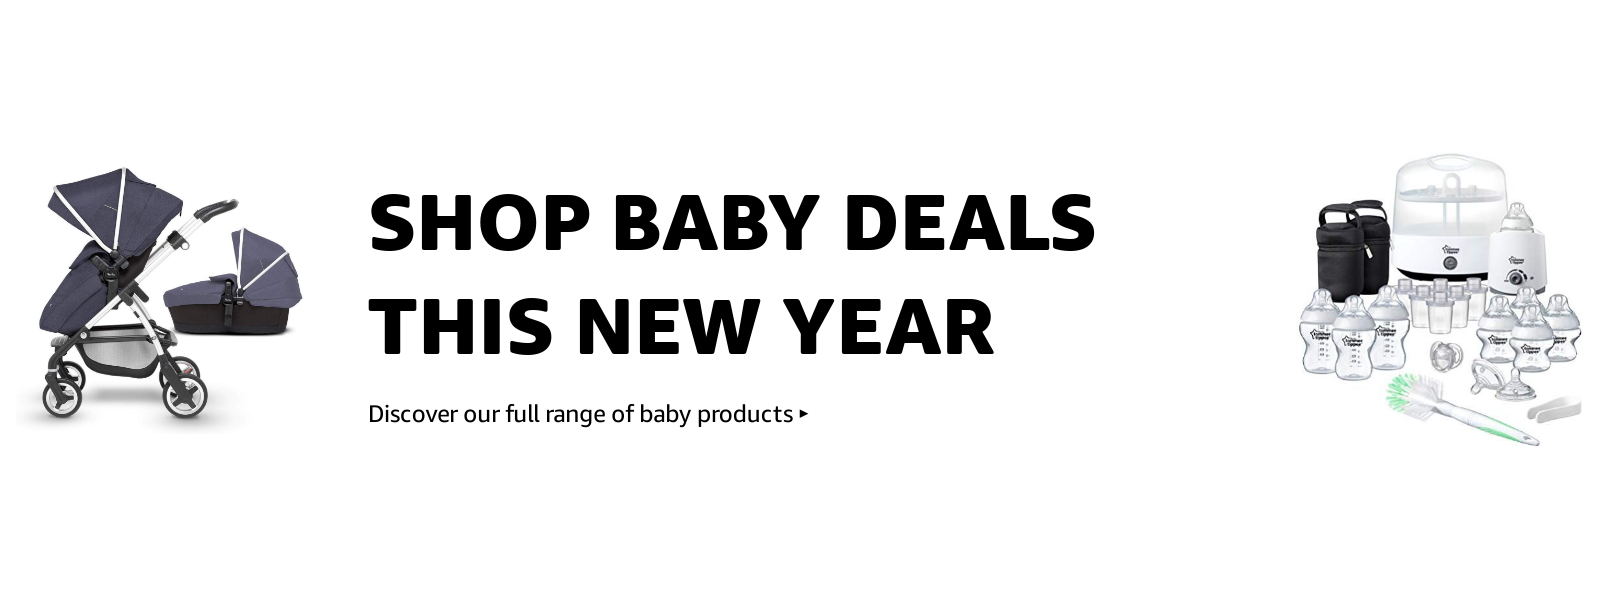 Shop Baby Deals this New Year